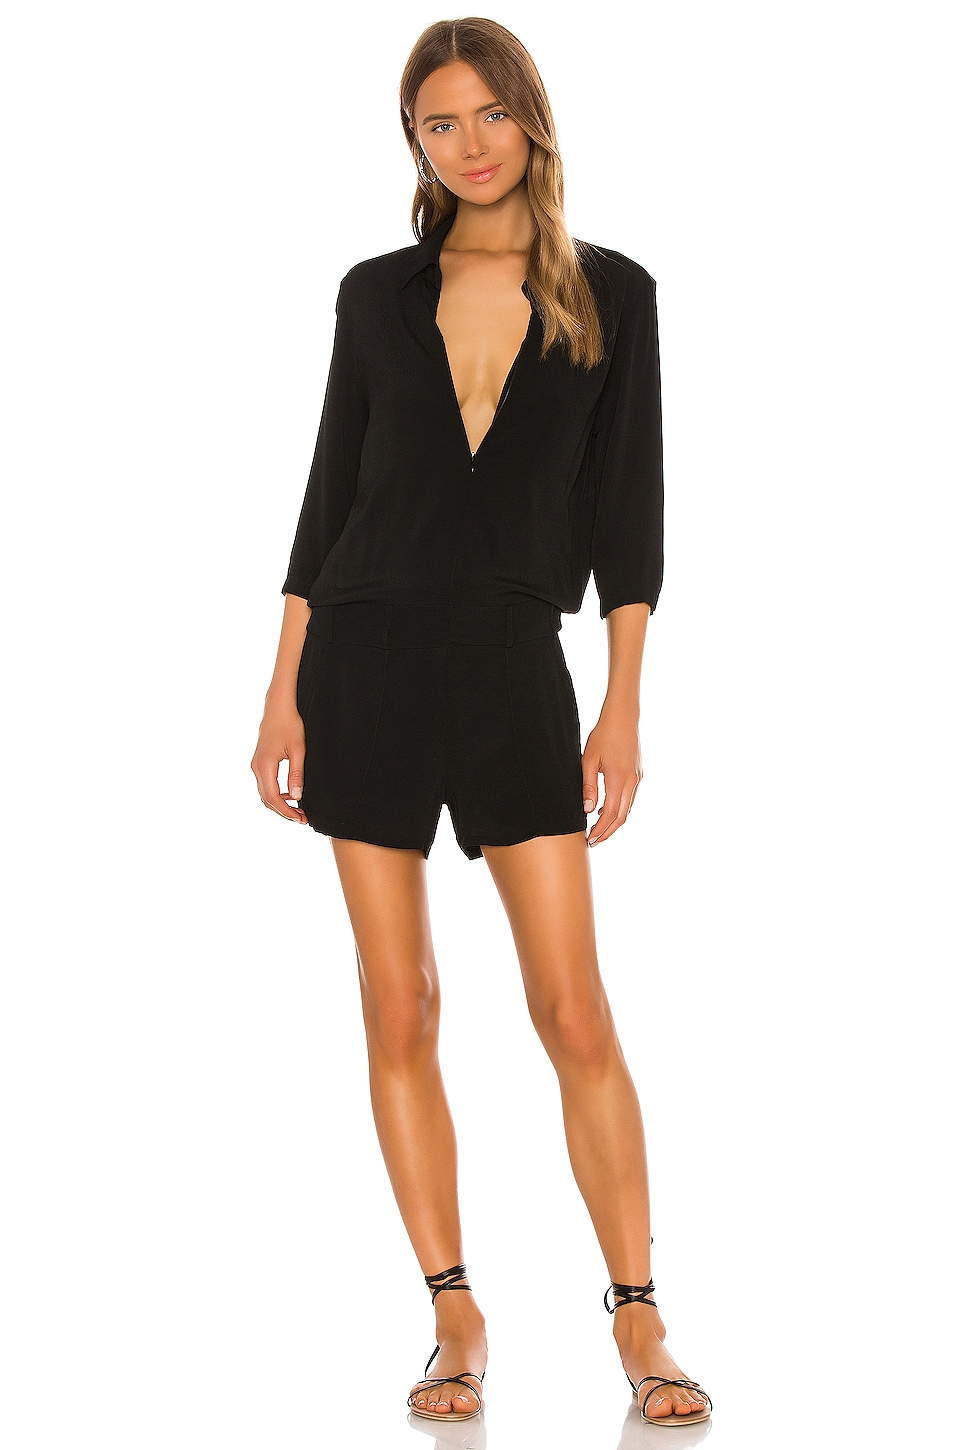 Black dress romper - Monrow Zip Up Romper In Black